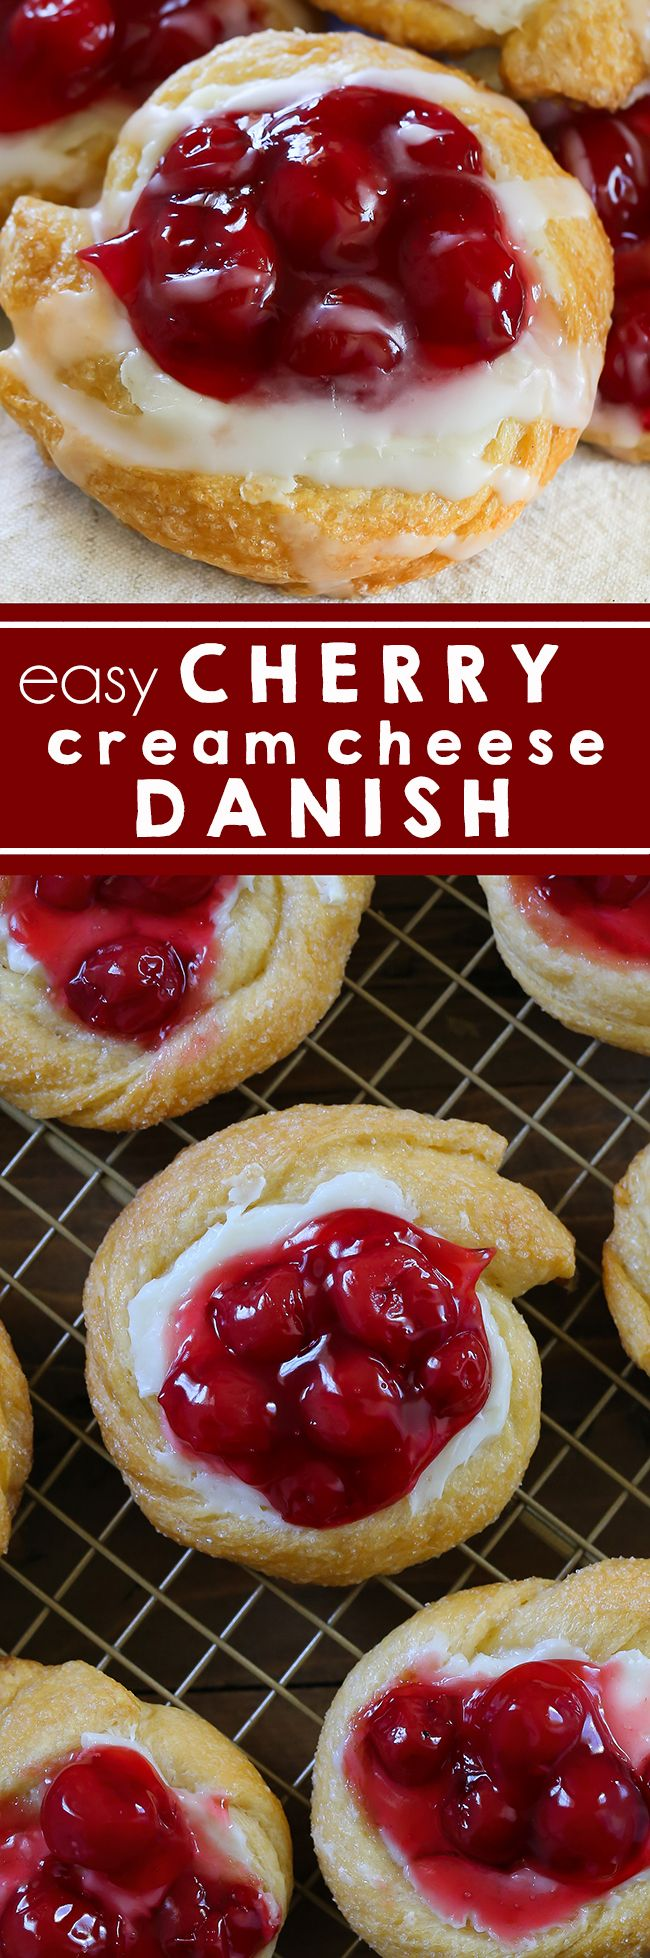 Cherry Cream Cheese Danish is an easy homemade breakfast pastry filled with cream cheese and cherry pie filling. Holiday Breakfast I Pastry I Danish I Cherry Pie I Cream Cheese  #breakfast #pastry